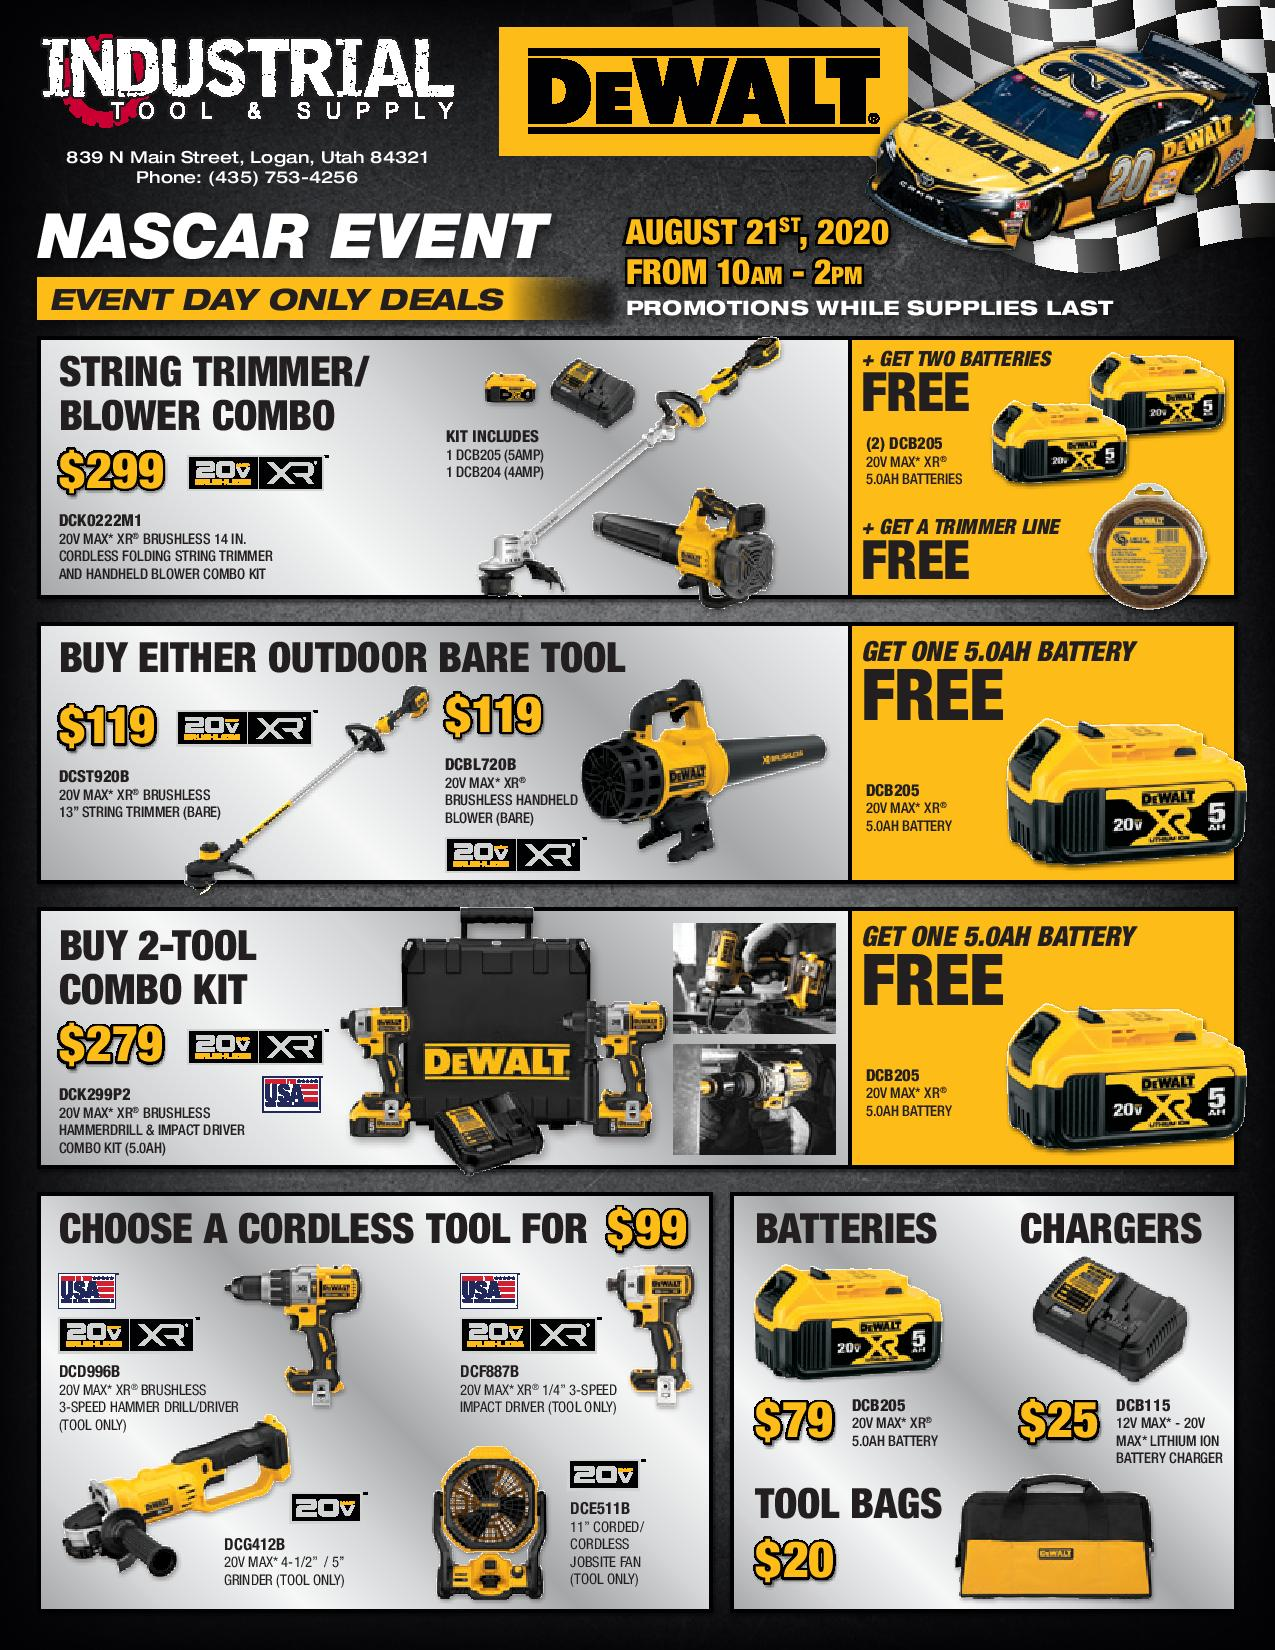 162623-industrial-tool-supply-nascar-event-flyer-proof2-page-001.jpg